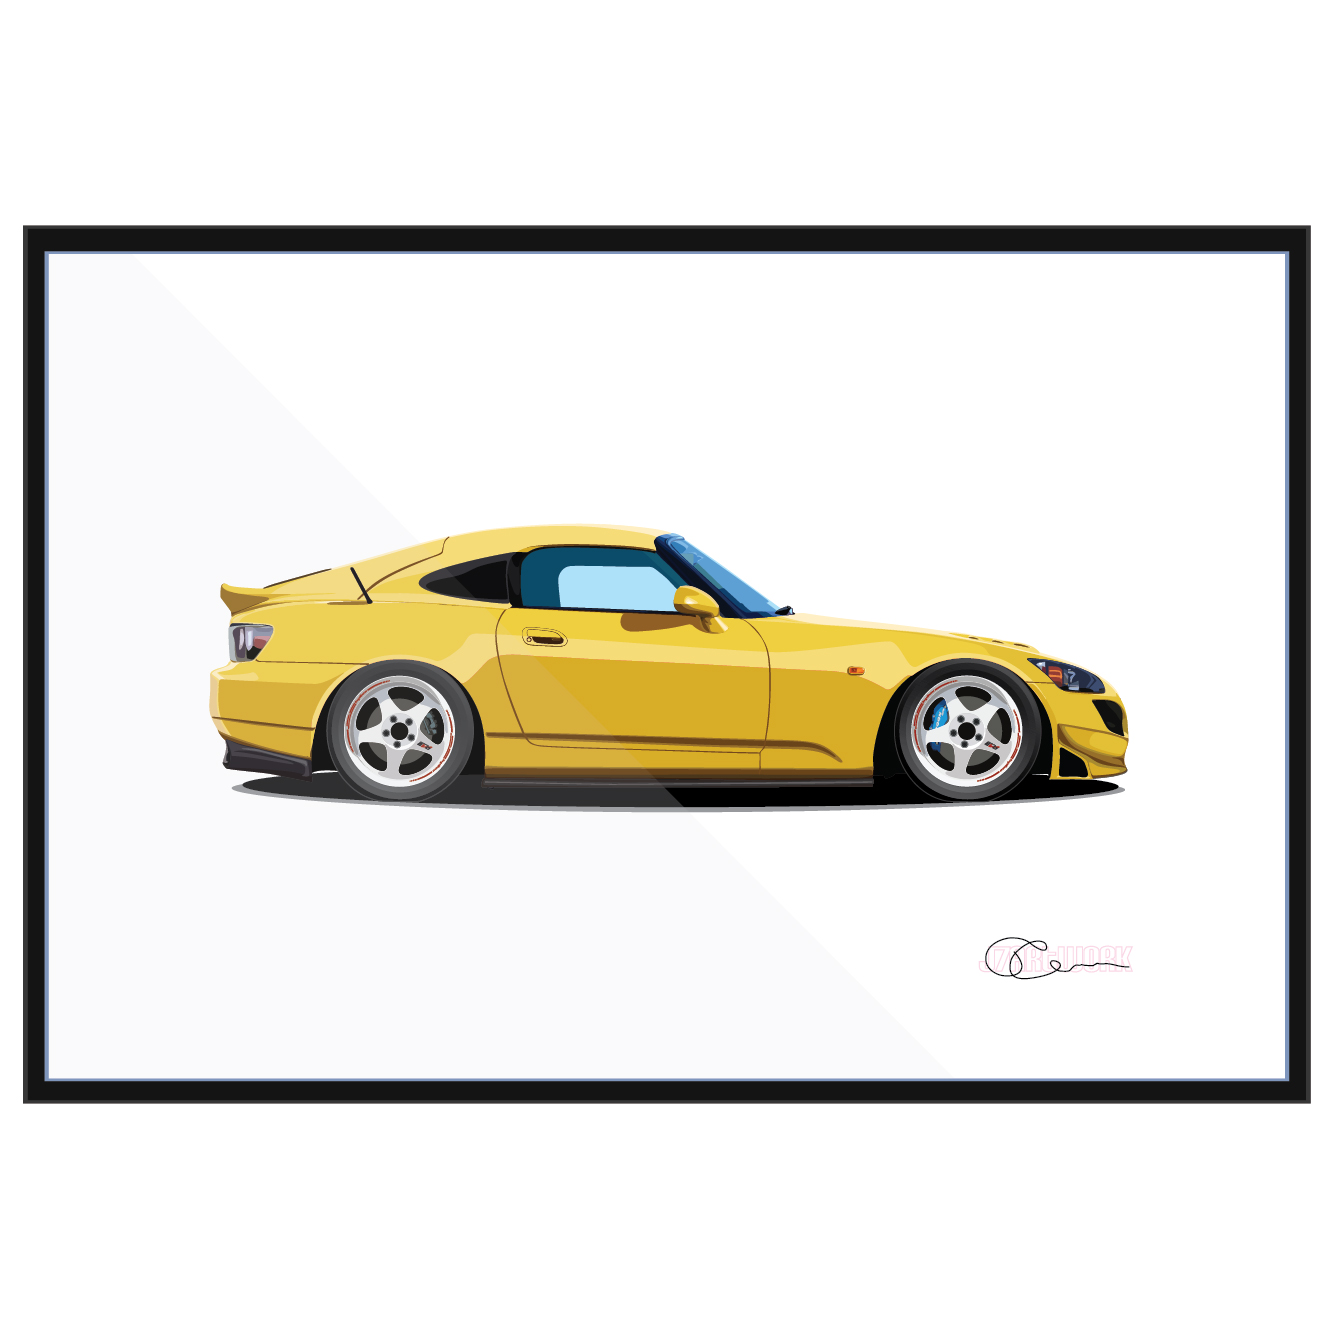 Honda S2000 Spoon Yellow